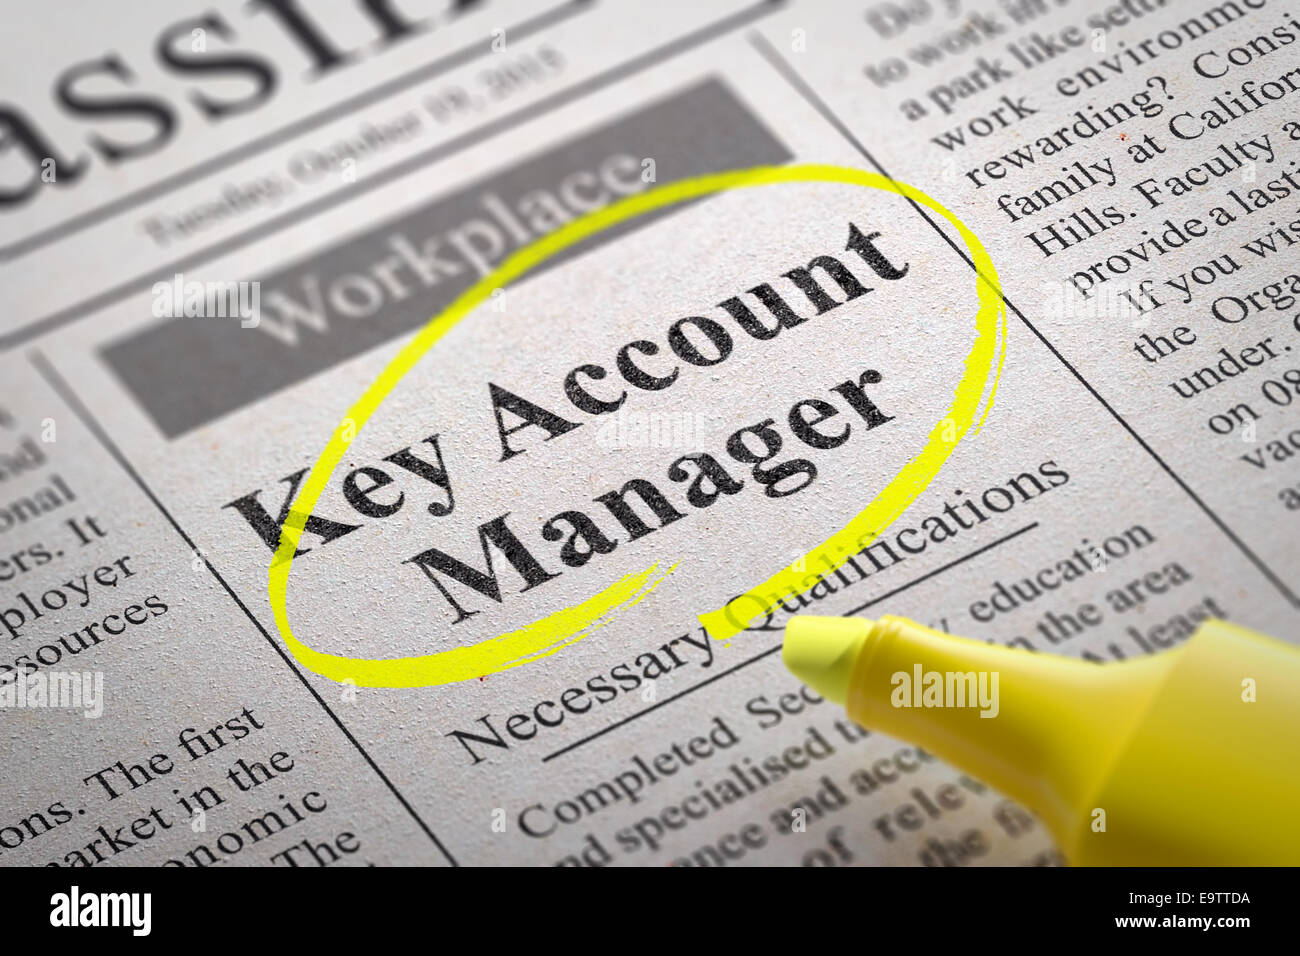 Key Account Manager Vacancy in Newspaper. Job Search Concept Stock ...